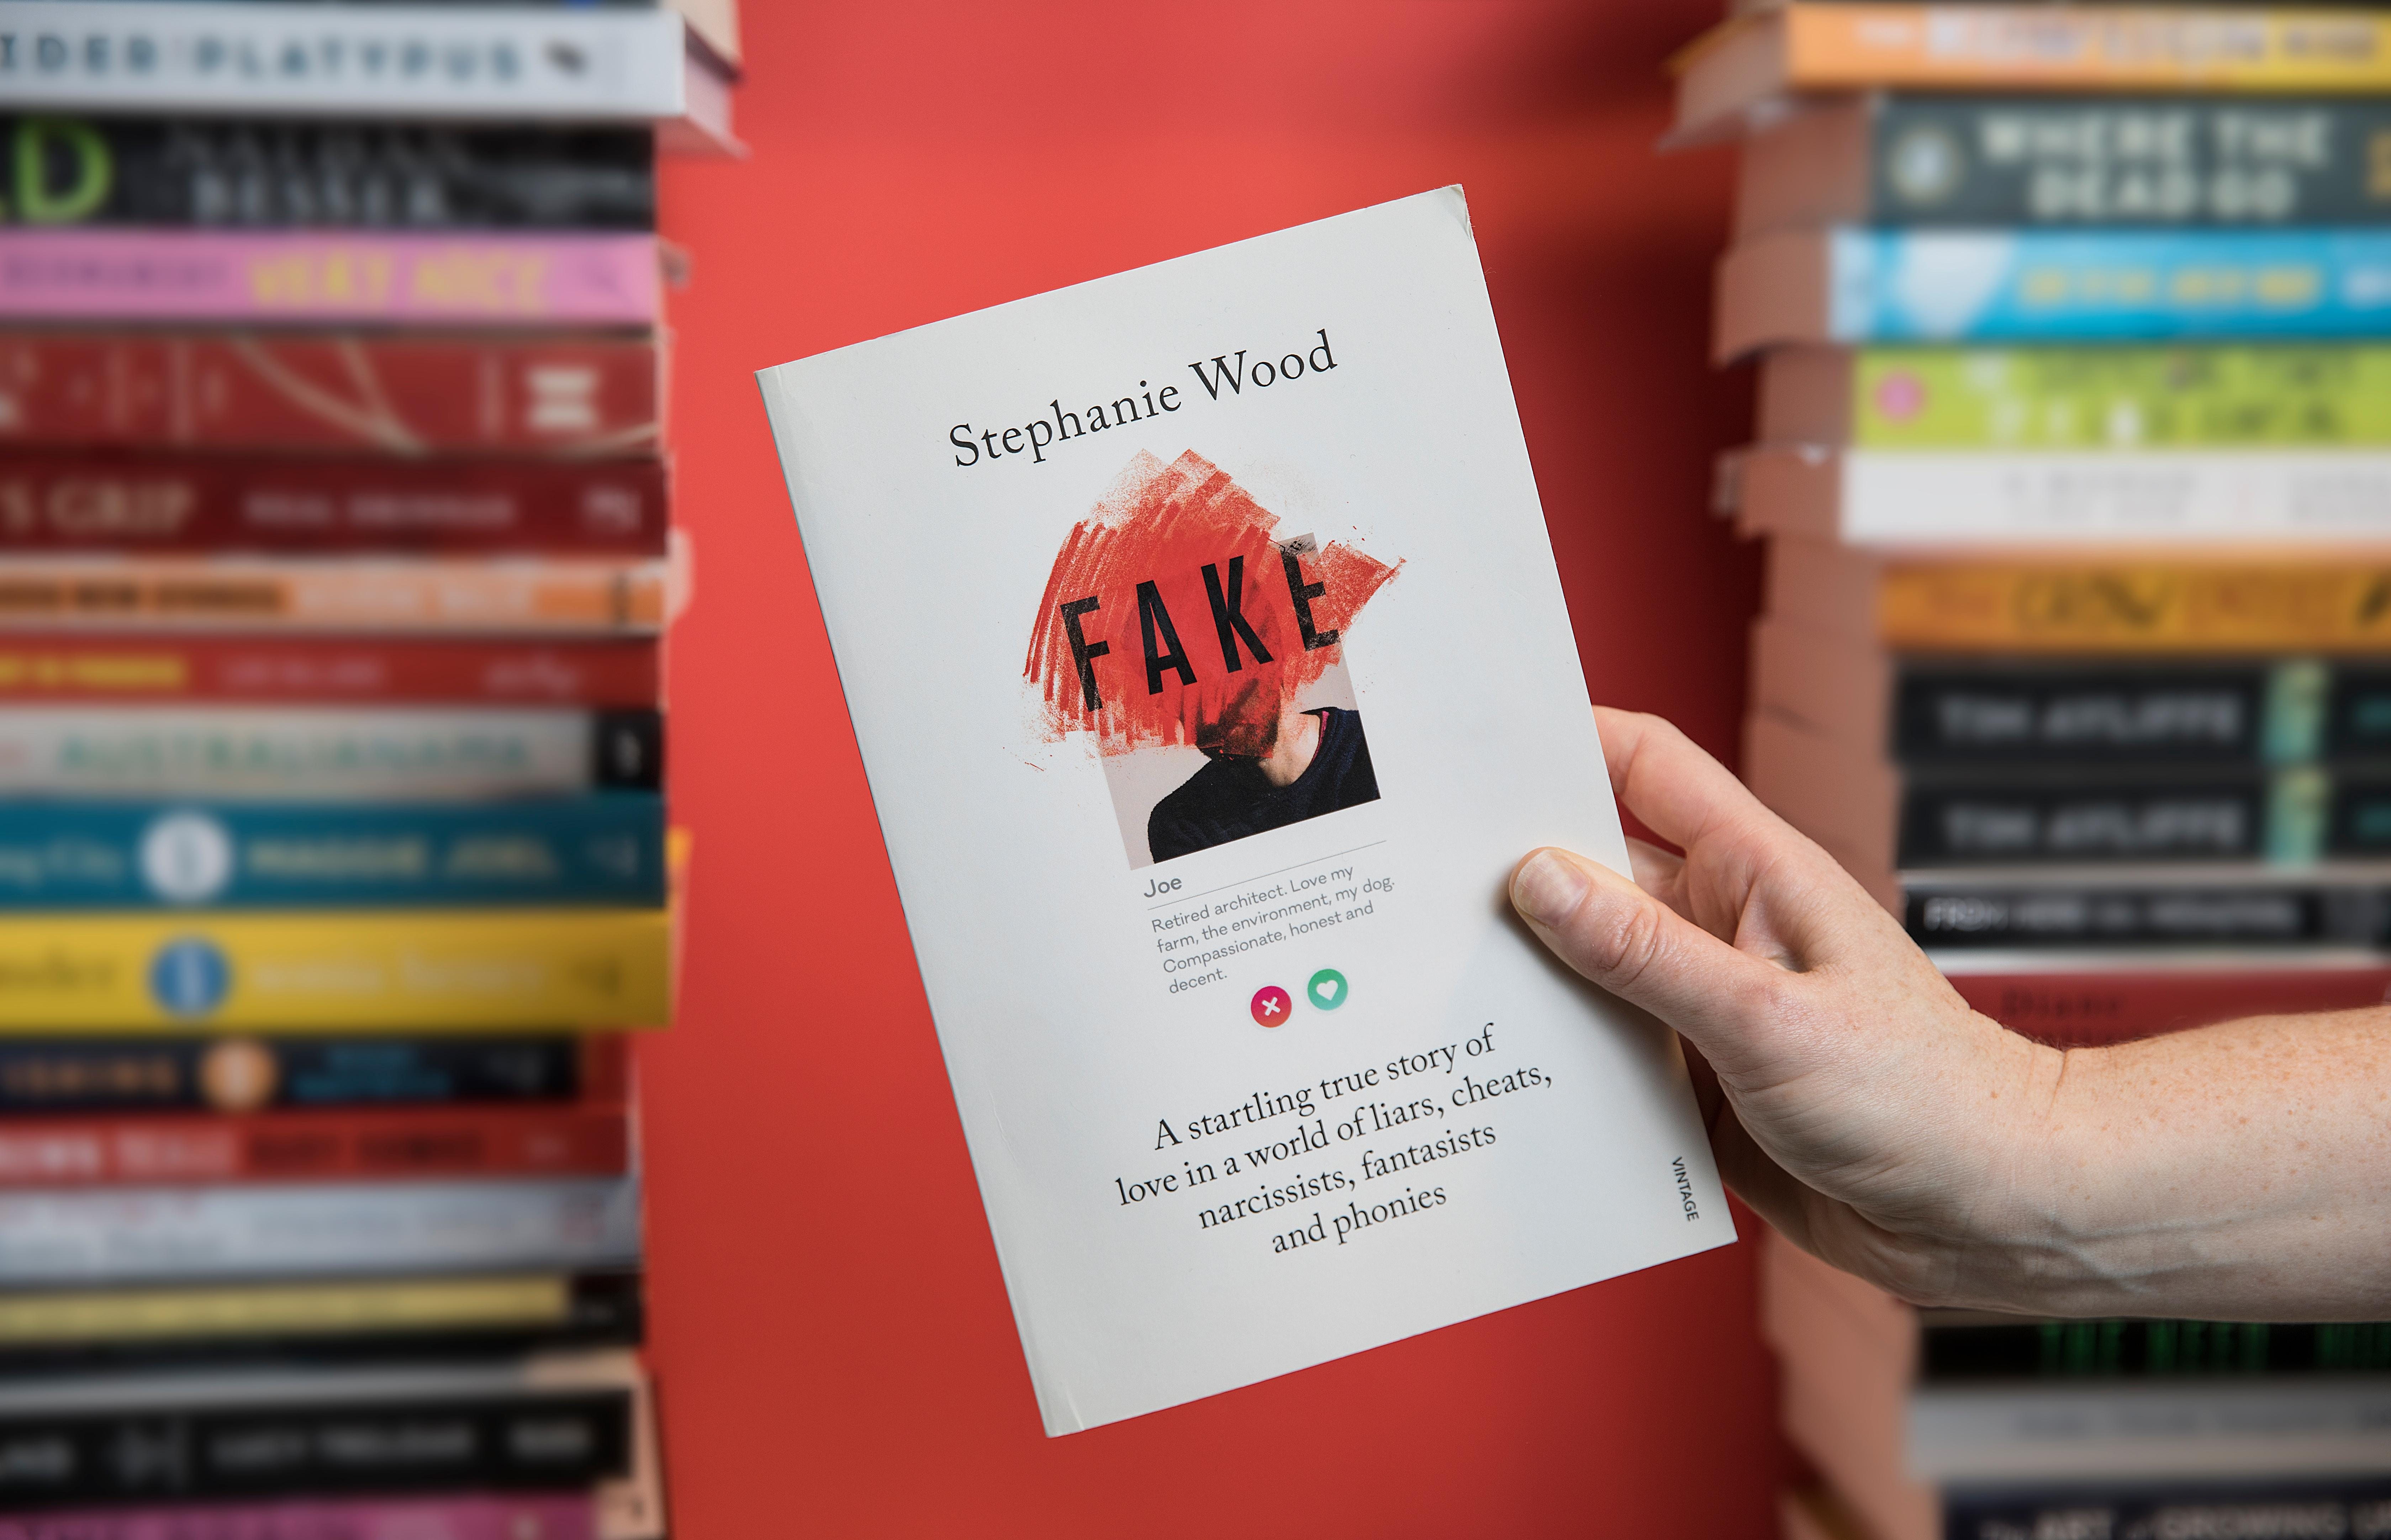 Fake by Stephanie Wood review – unmissable tale of love, lies and revelation